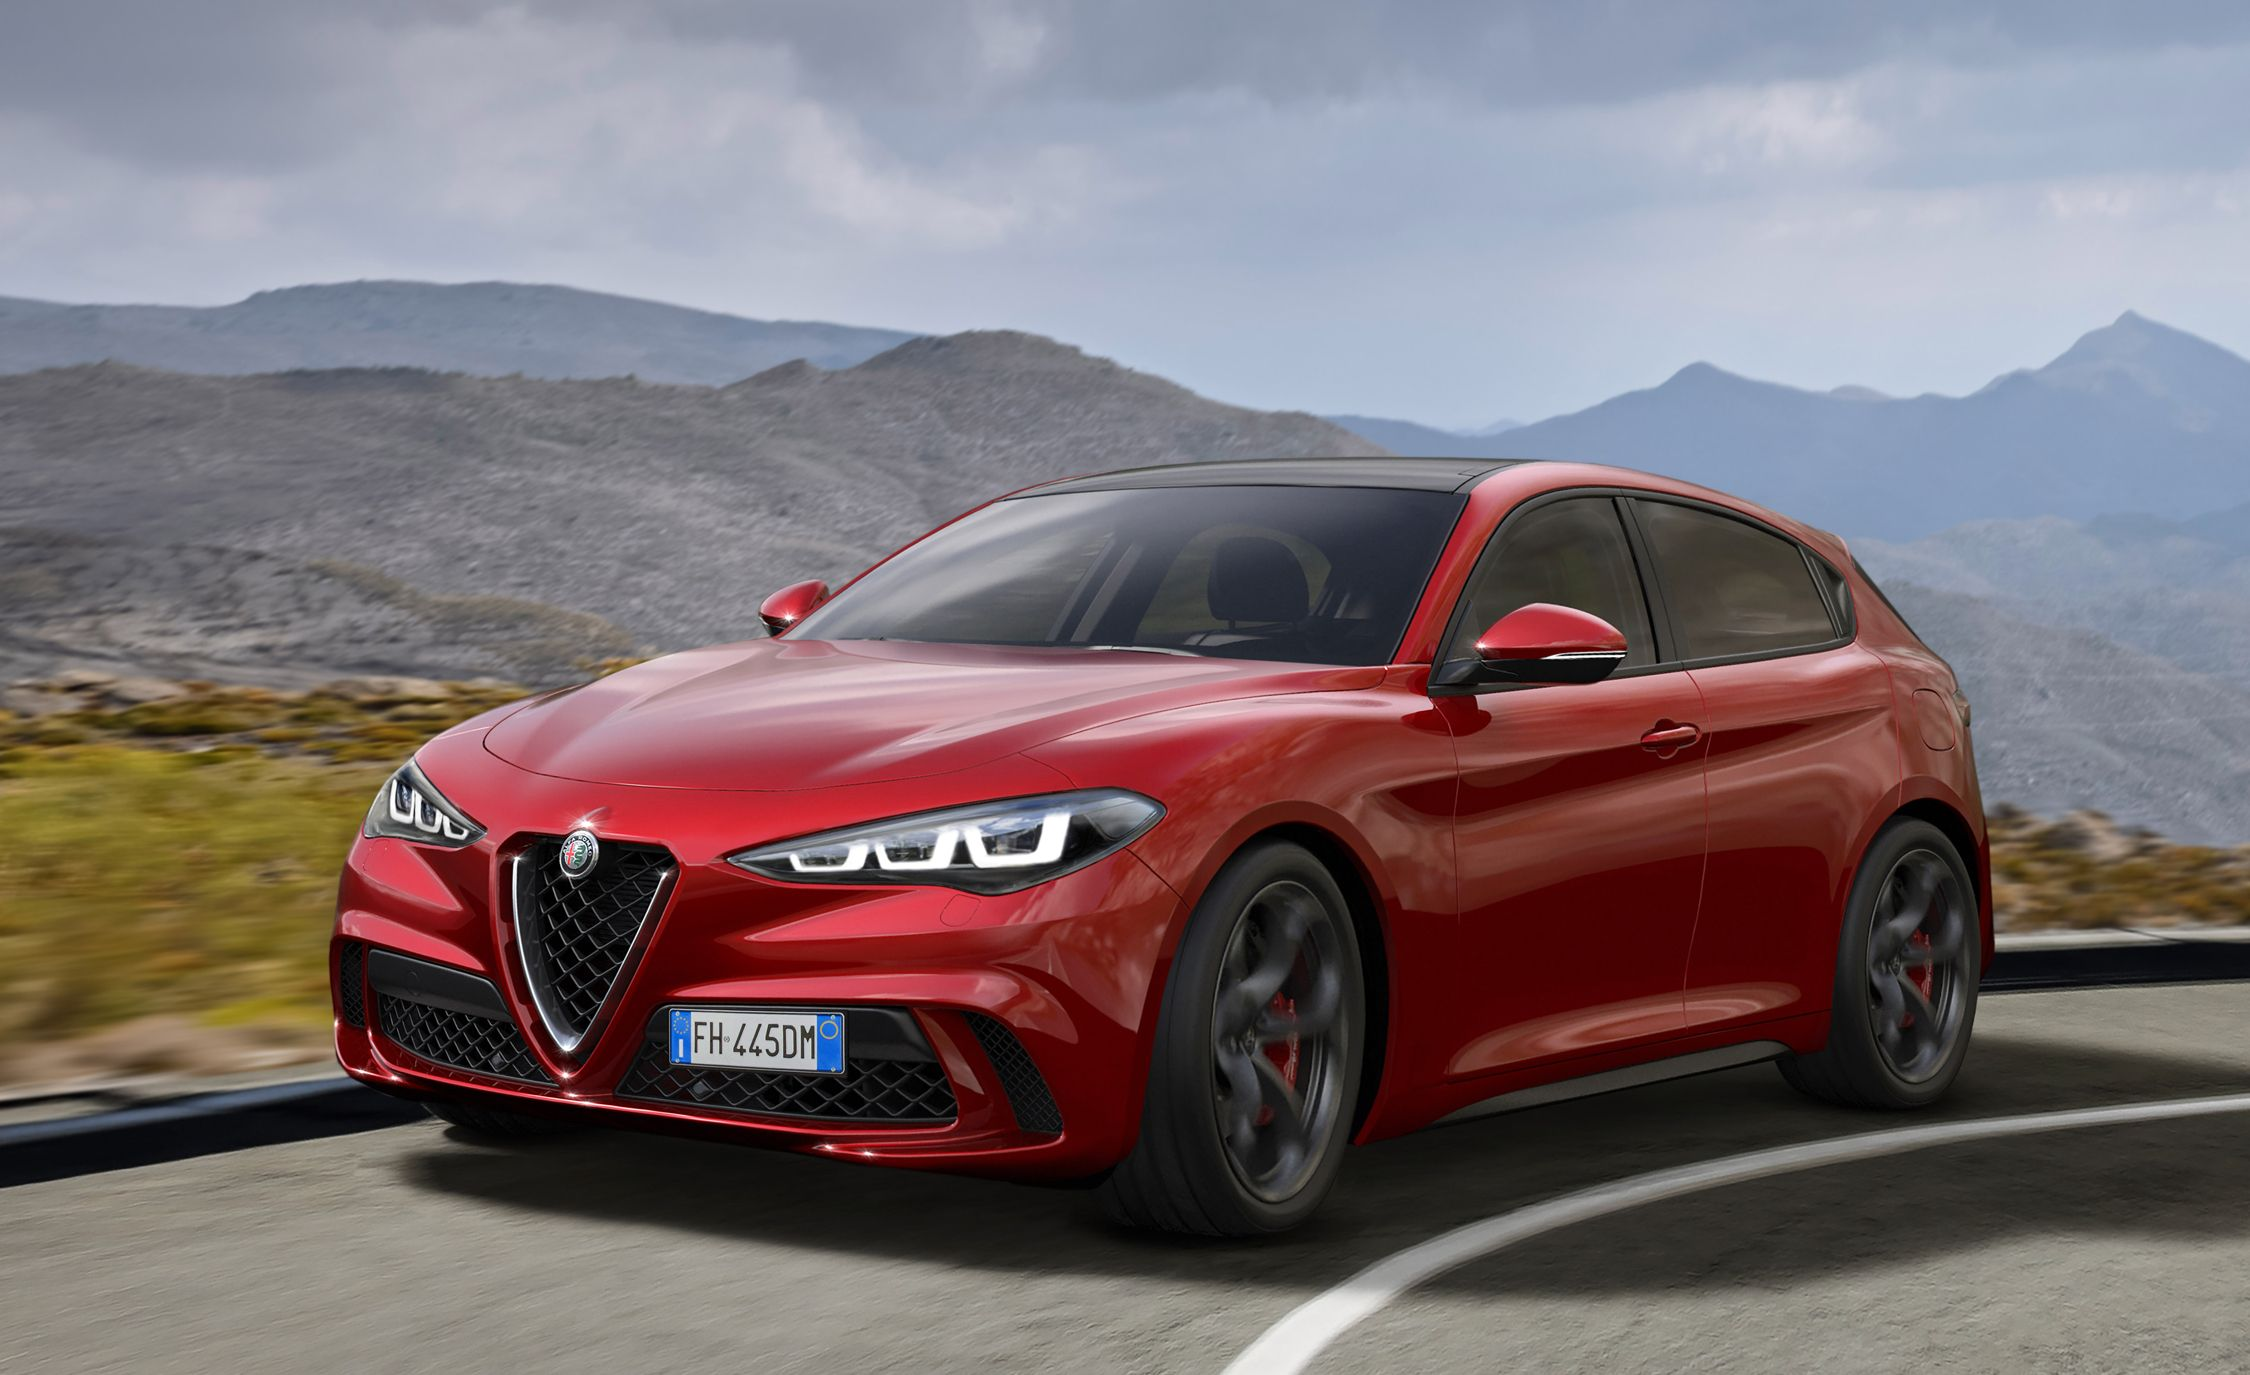 2020 Alfa Romeo Giulietta Is Going Rear-Wheel Drive